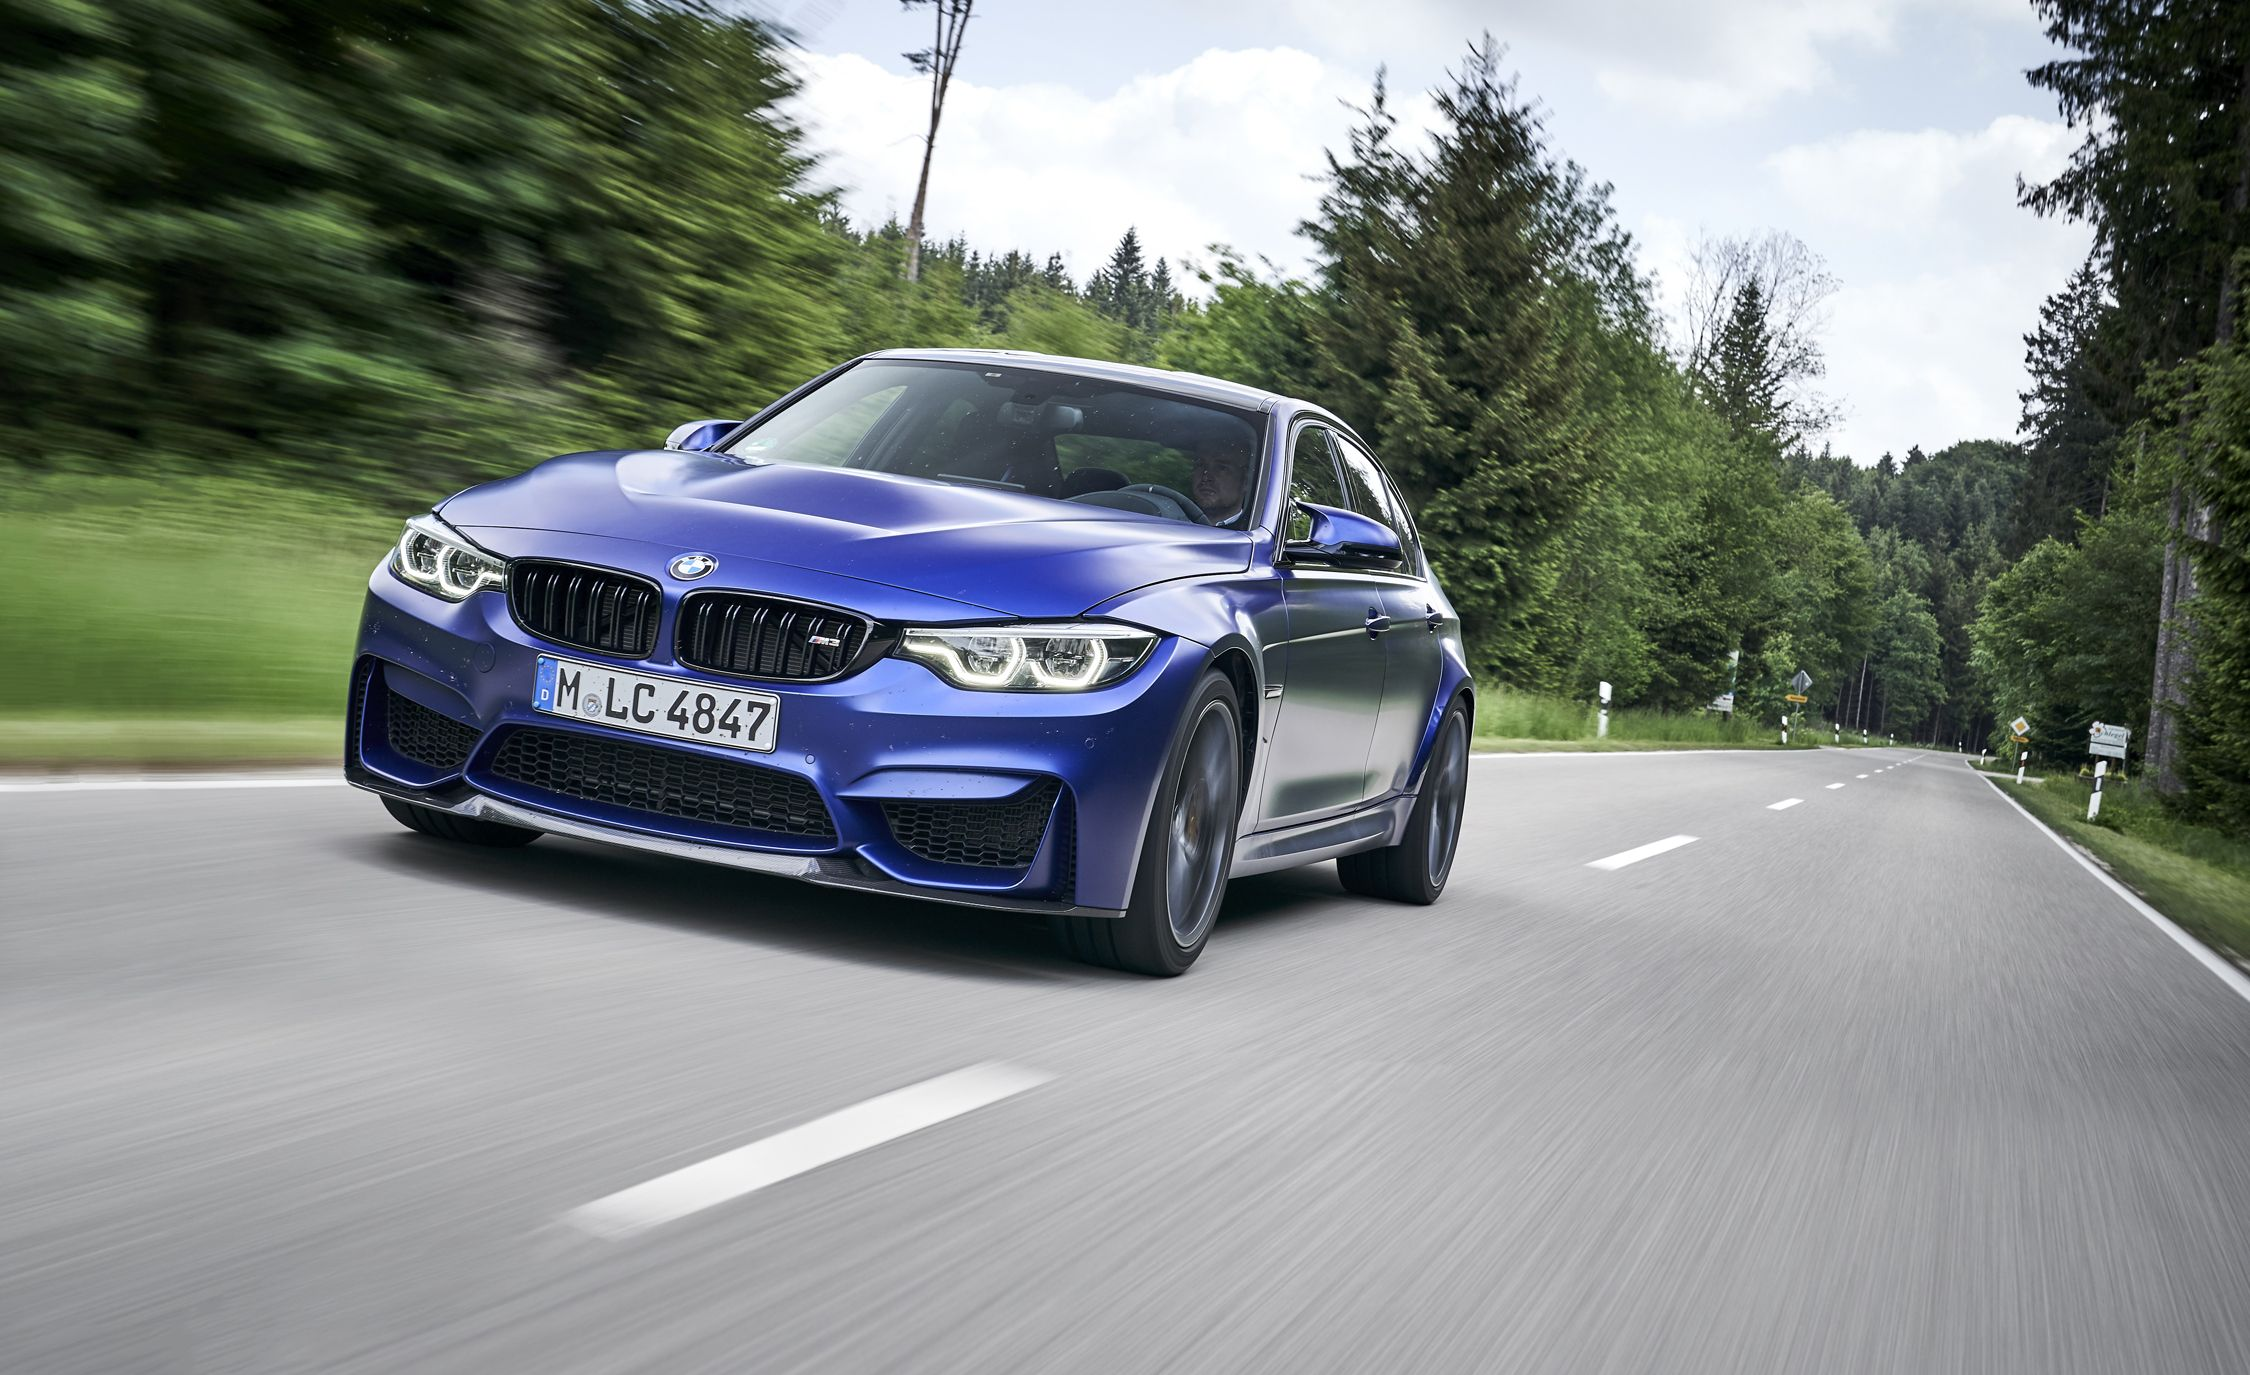 BMW M3 Price, Photos, And Specs